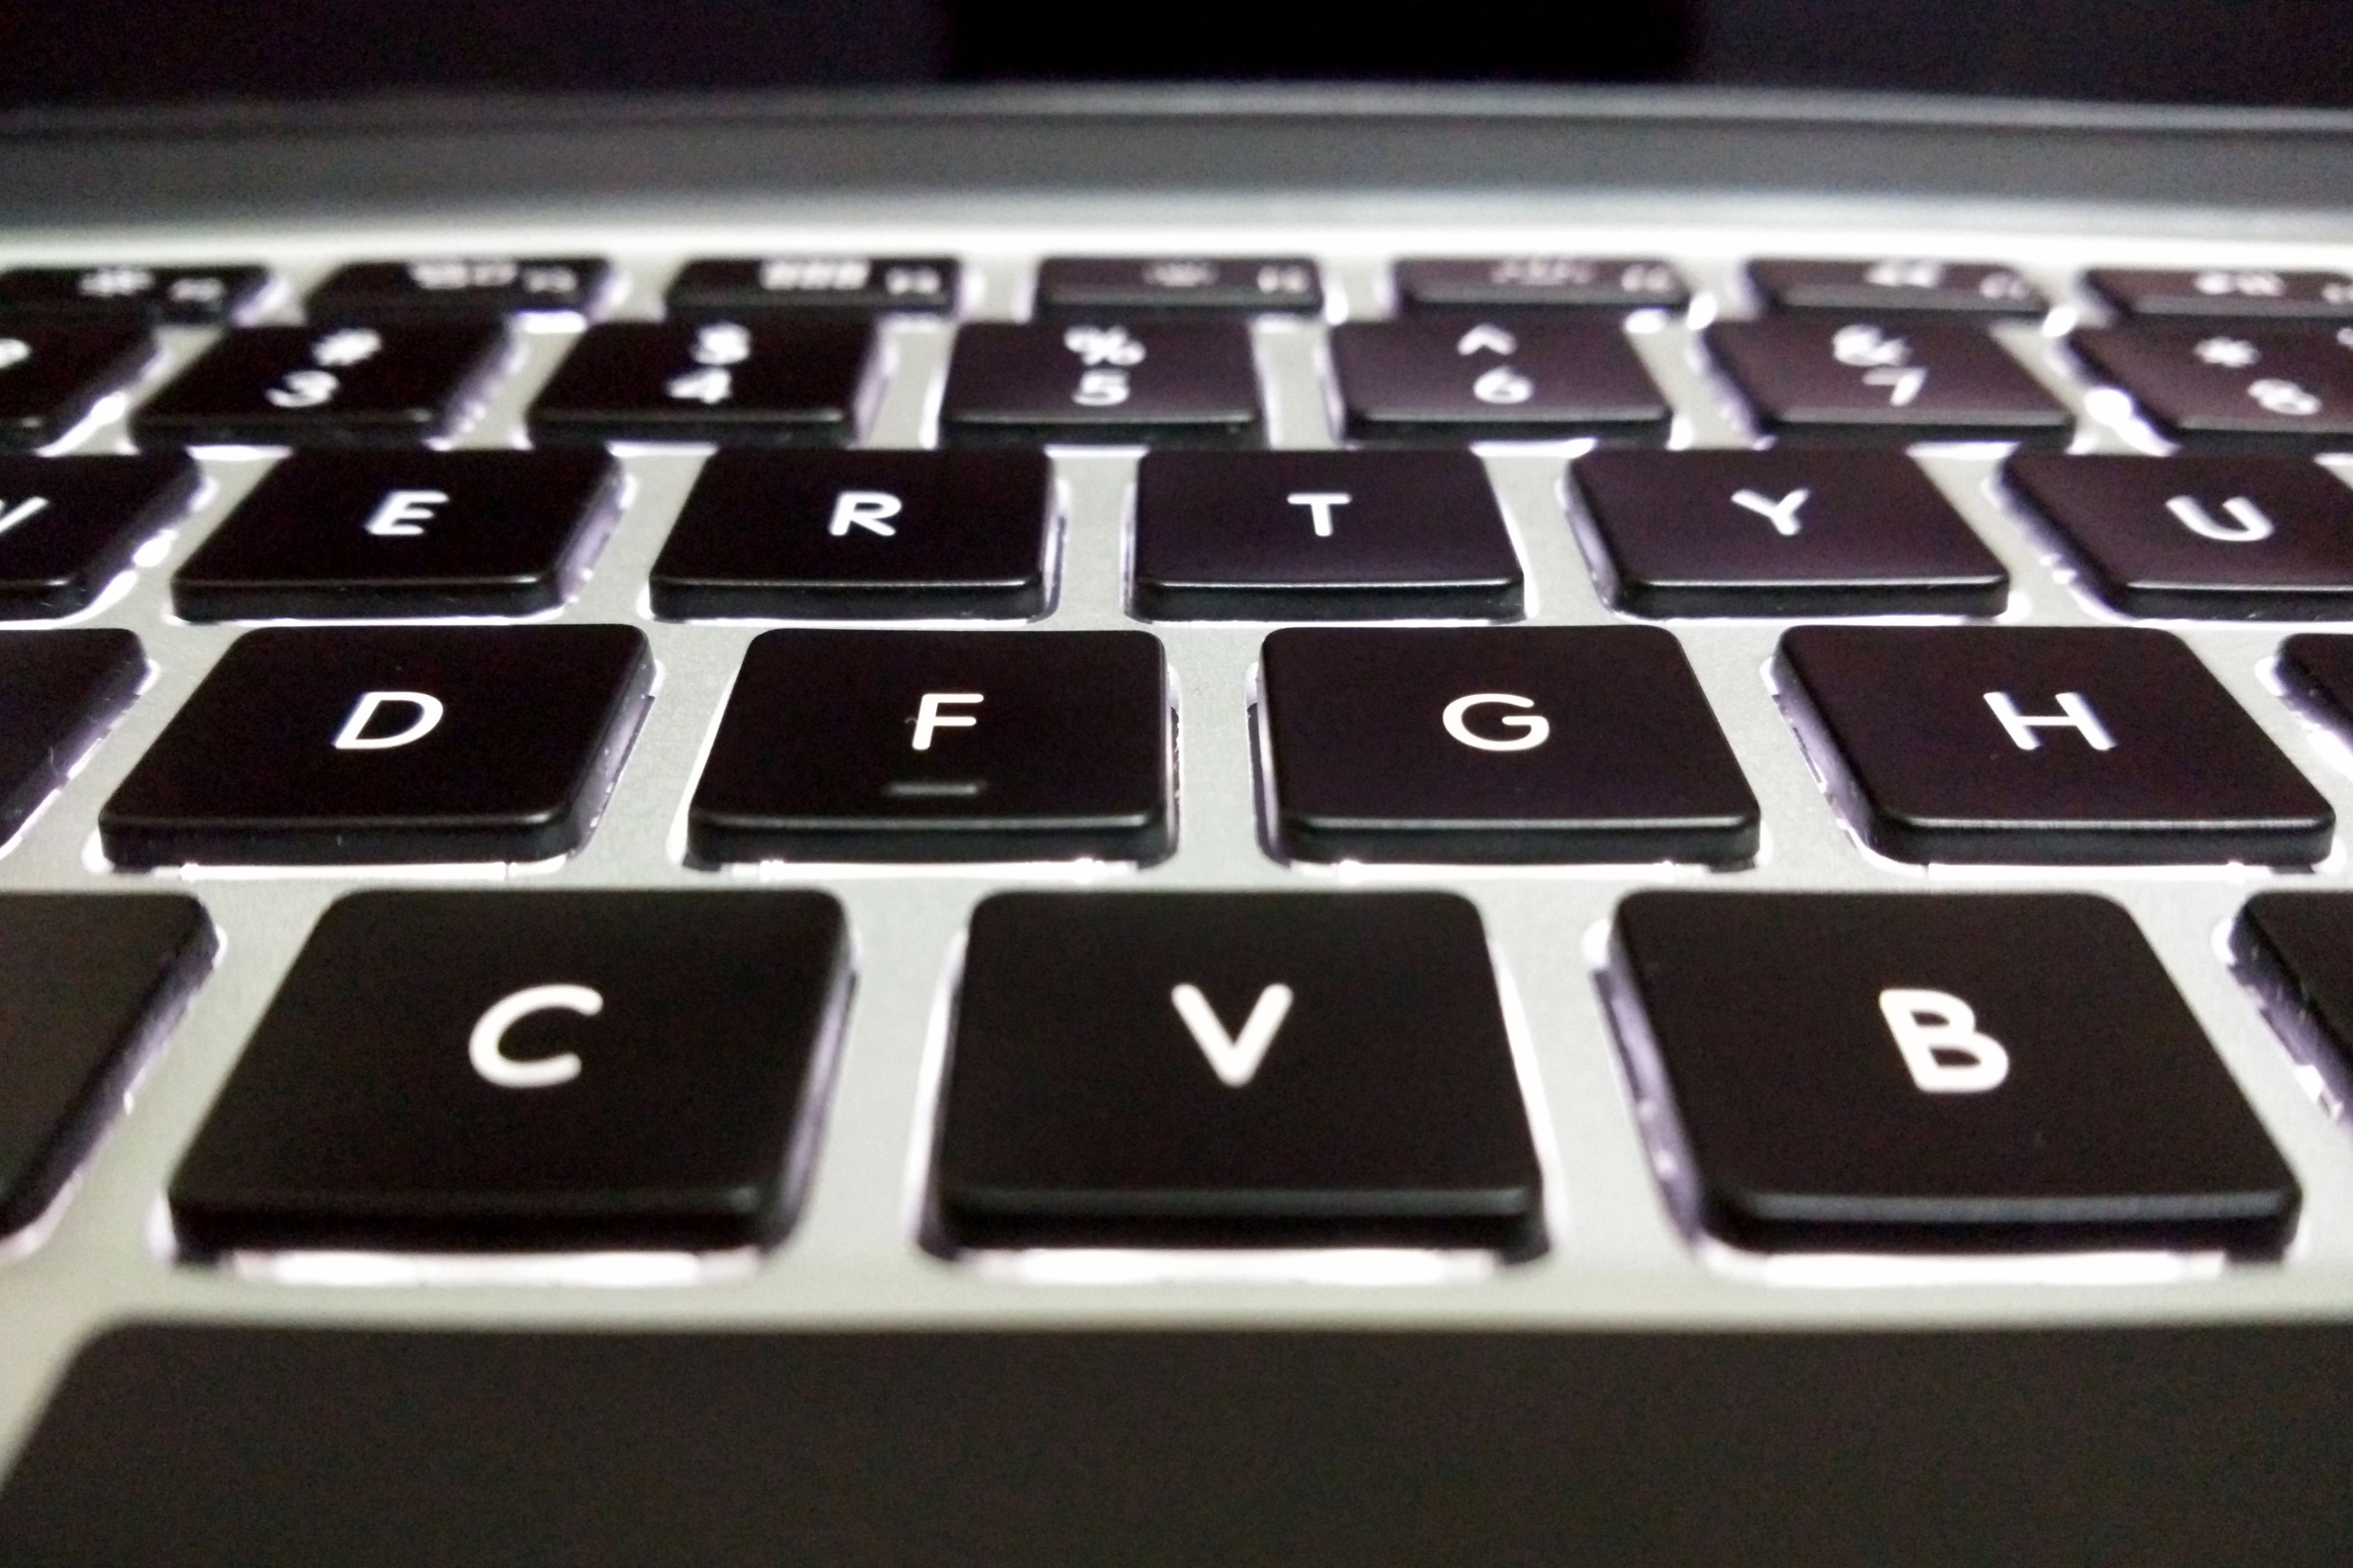 Cleaning Macbook Keyboard, Dustoff without Removing the